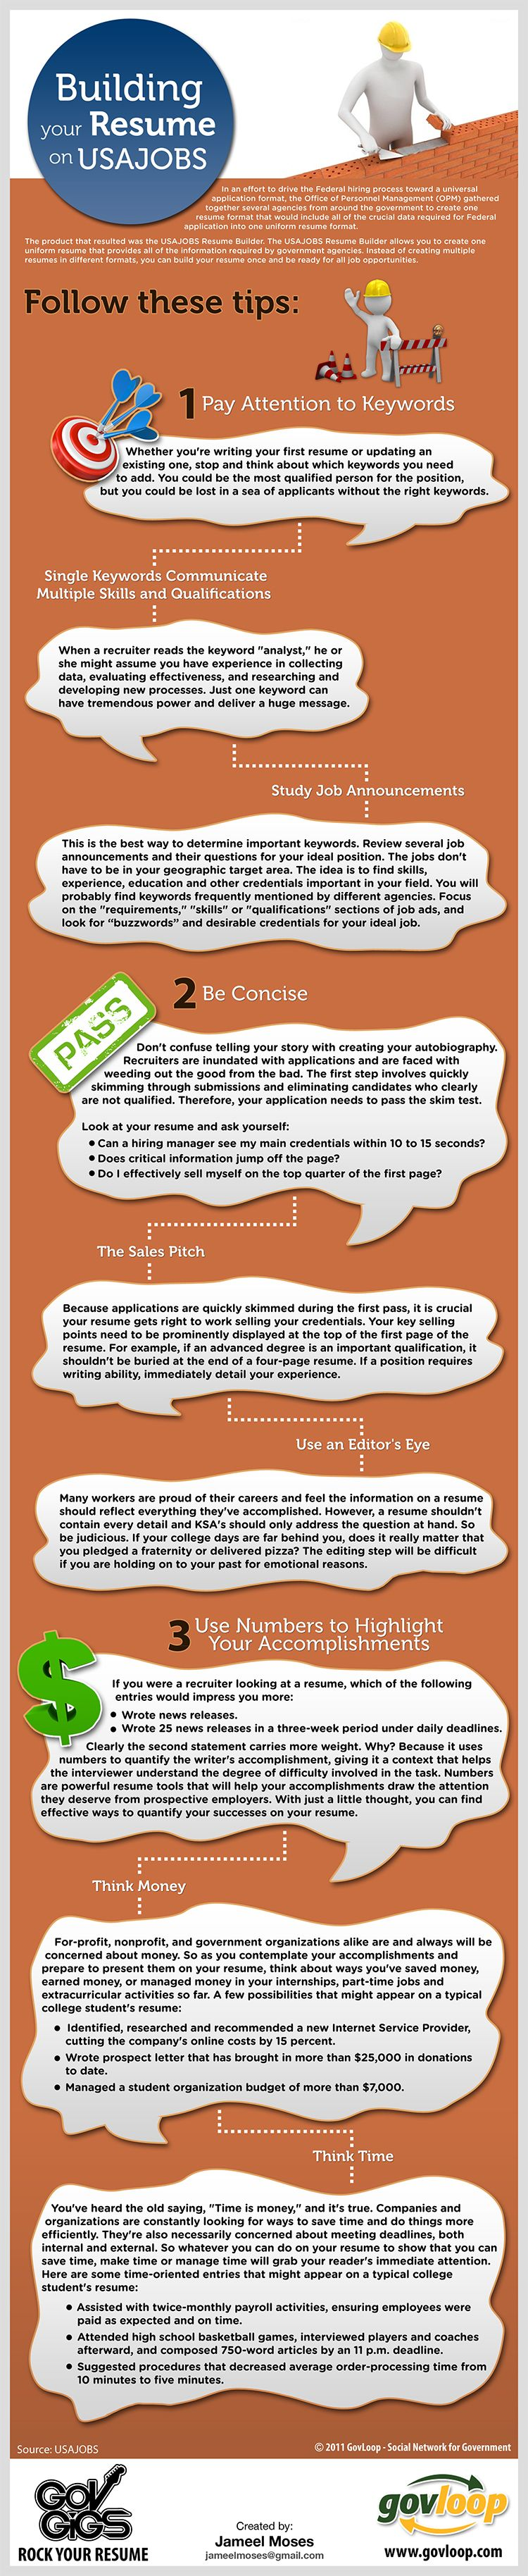 Rock Your Resume USAJOBSStyle Infograph to help job seekers